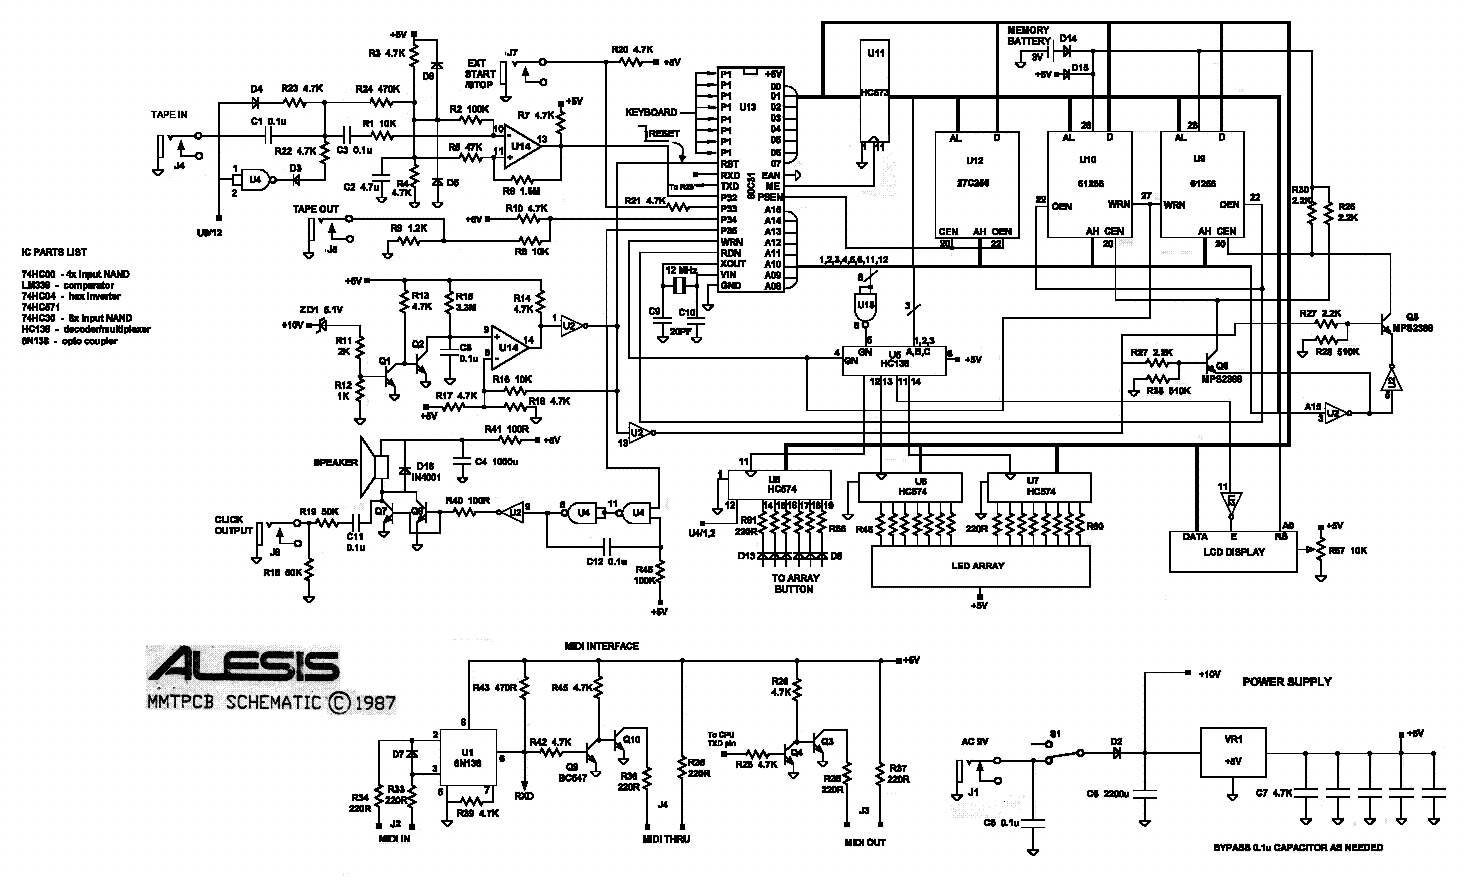 Alesis Mmt8 Rev 2 Schematic Service Manual Download Schematics Eeprom Repair Info For